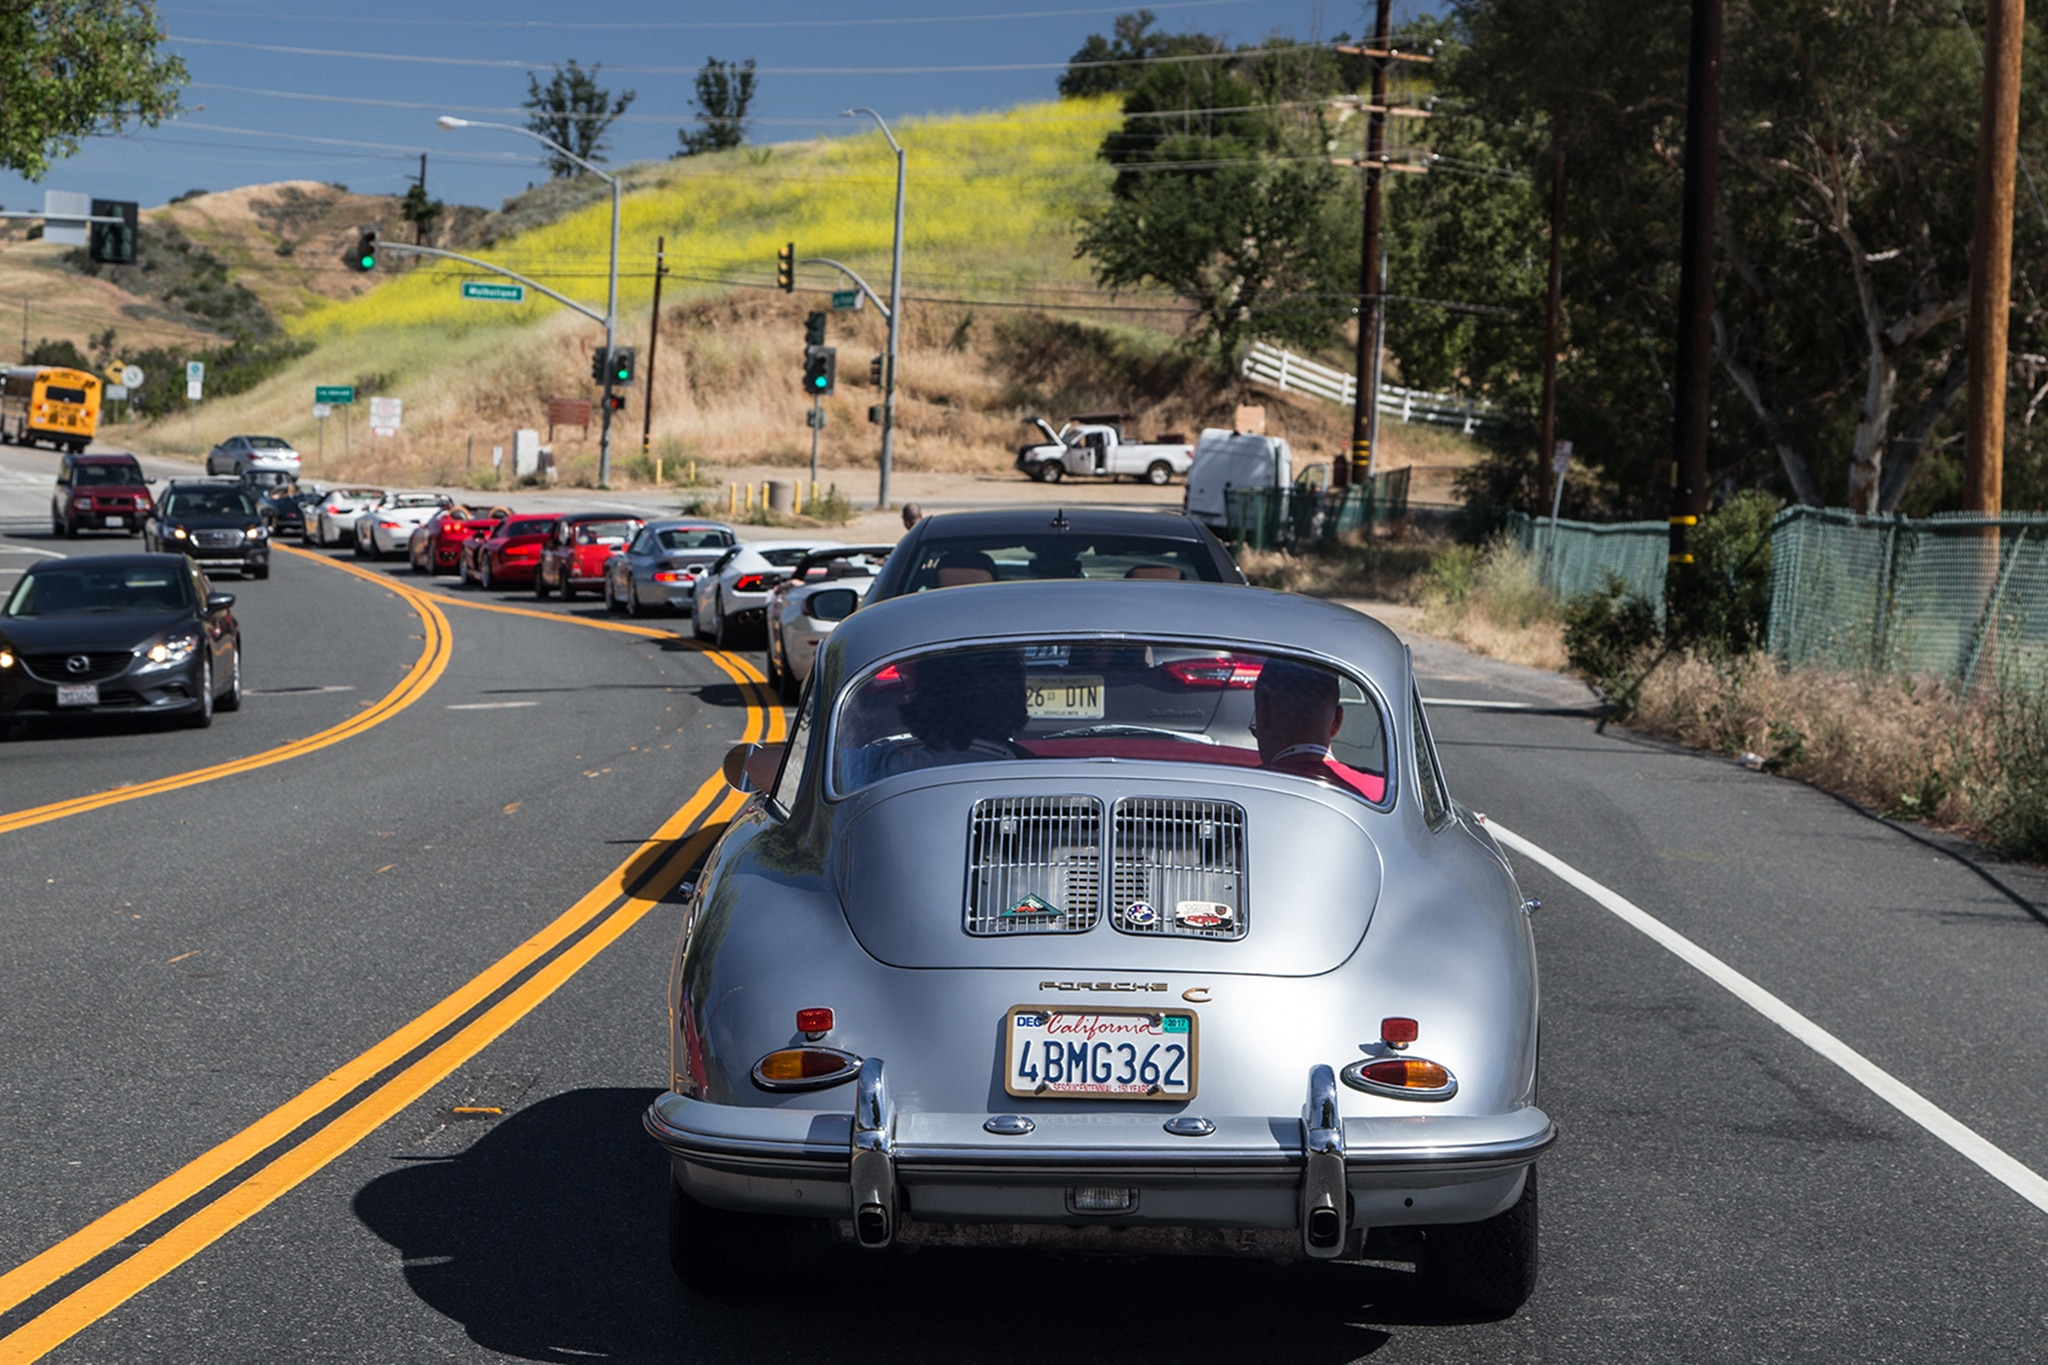 1964 Porsche 356 C Rear View In Motion 03